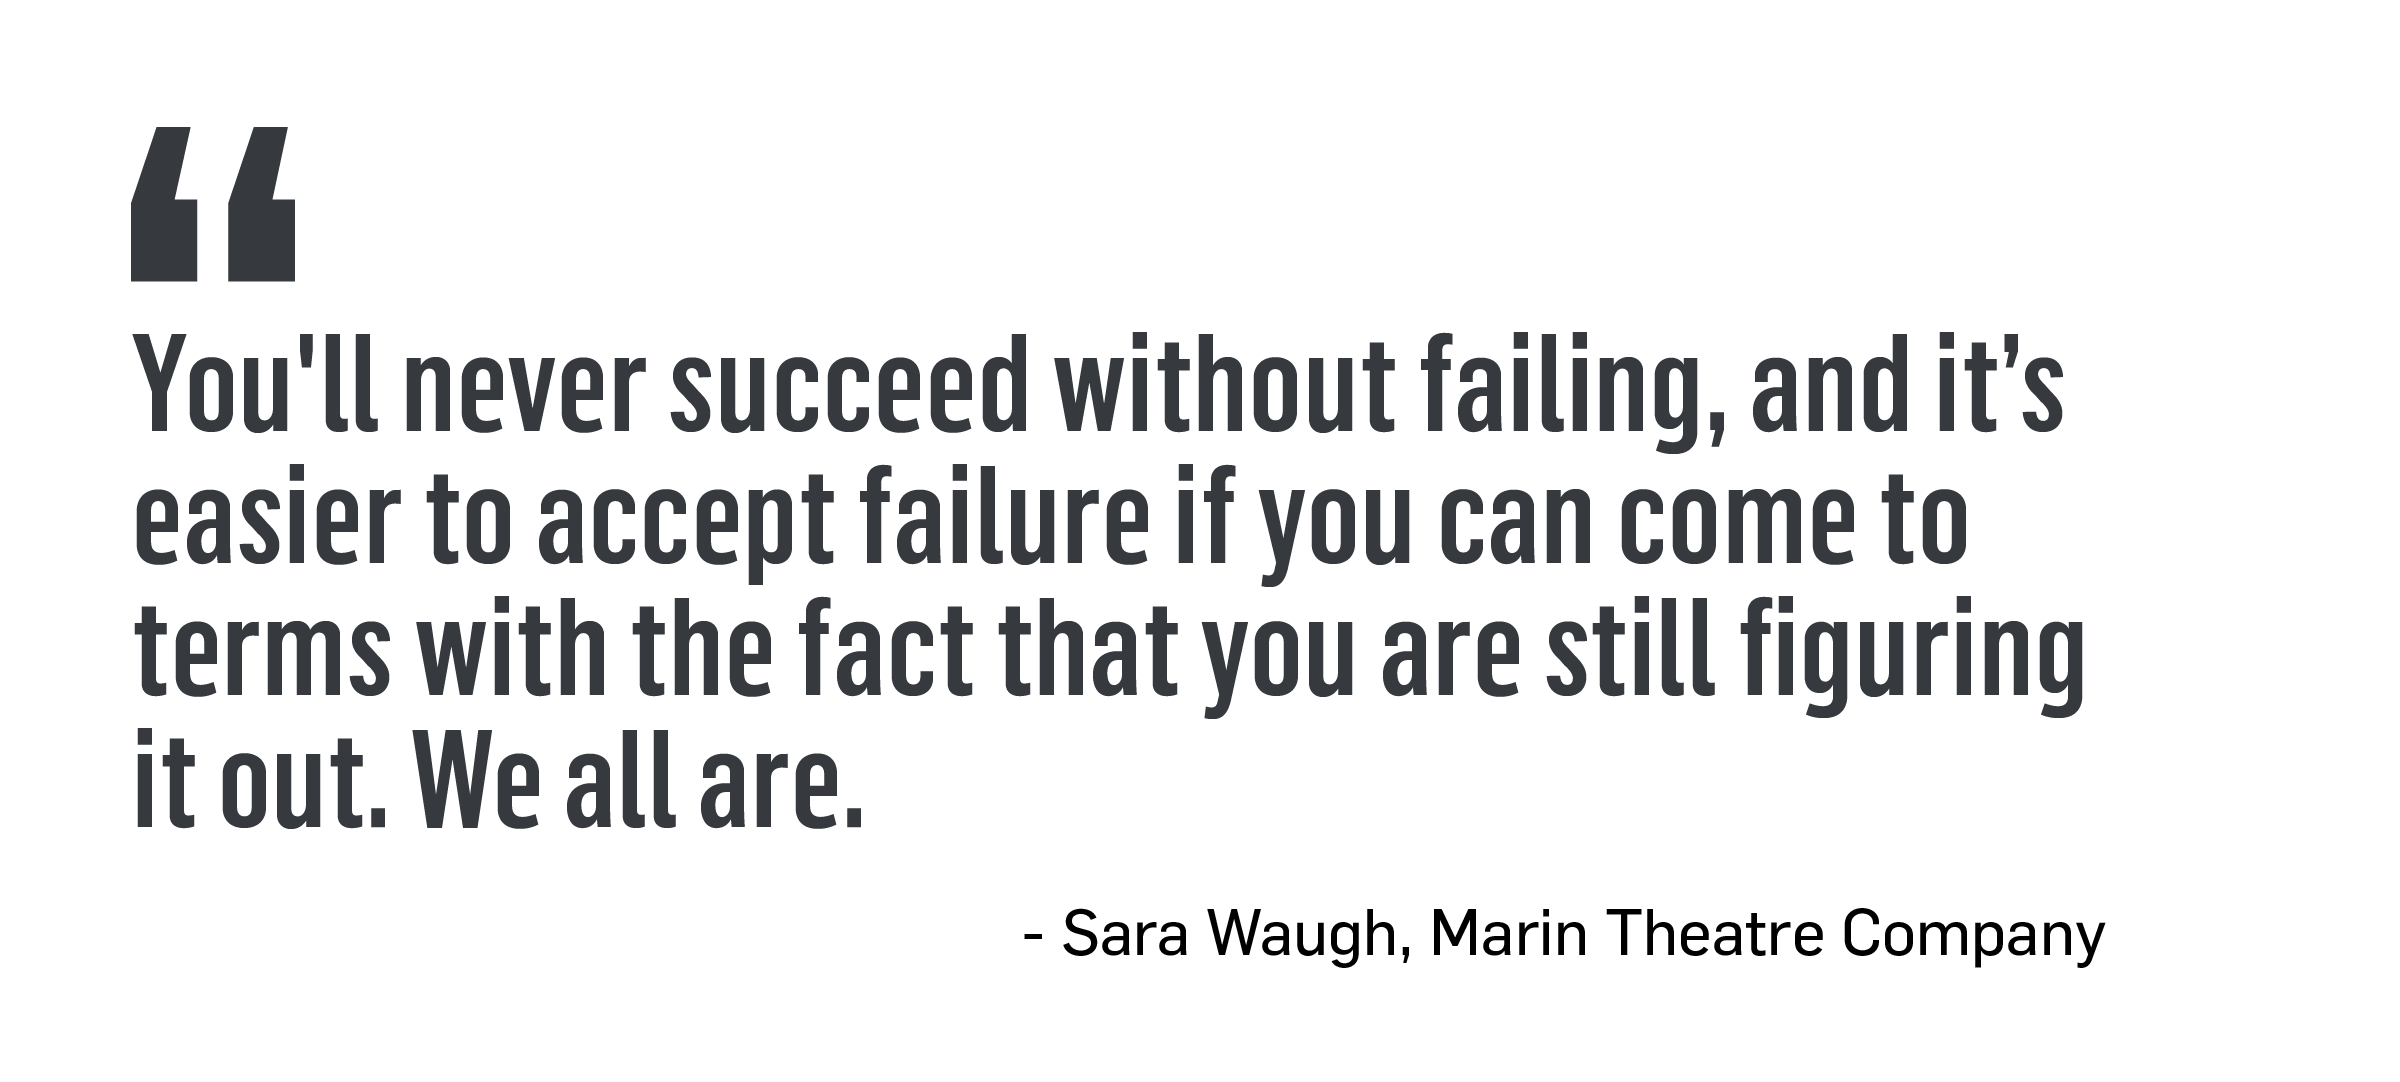 You'll never succeed without failing, and it's easier to accept failure if you can come to terms with the fact that you are still figuring it out. We all are. -Sara Waugh, Marin Theater